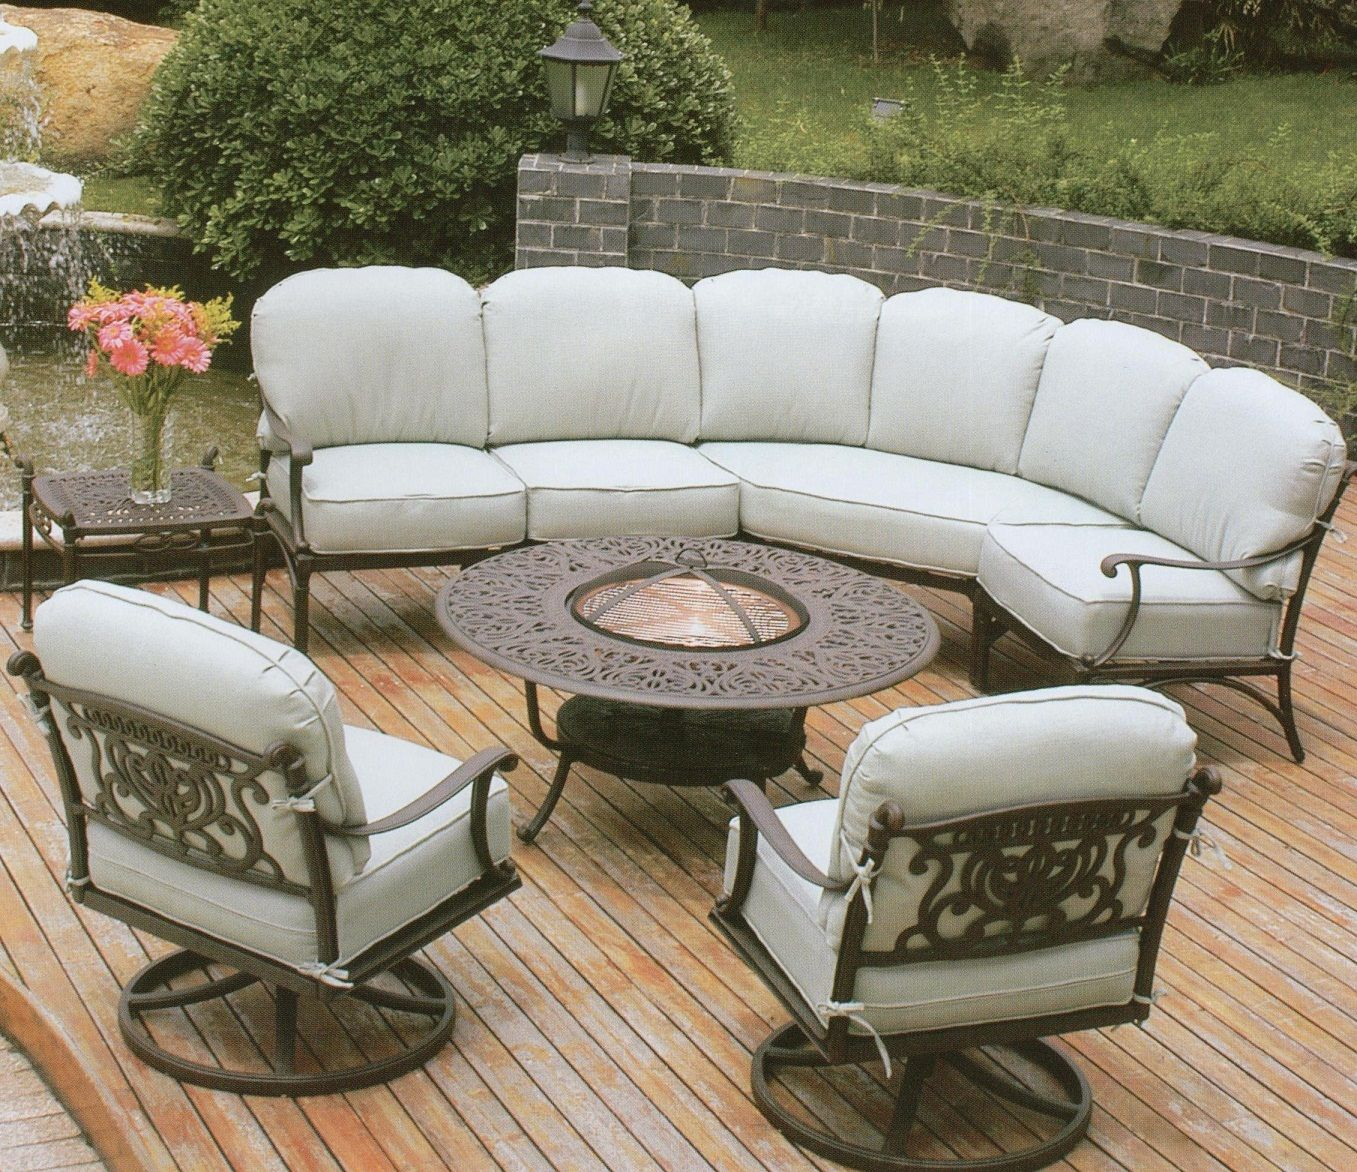 Download Wallpaper Patio Sets Clearance Free Shipping